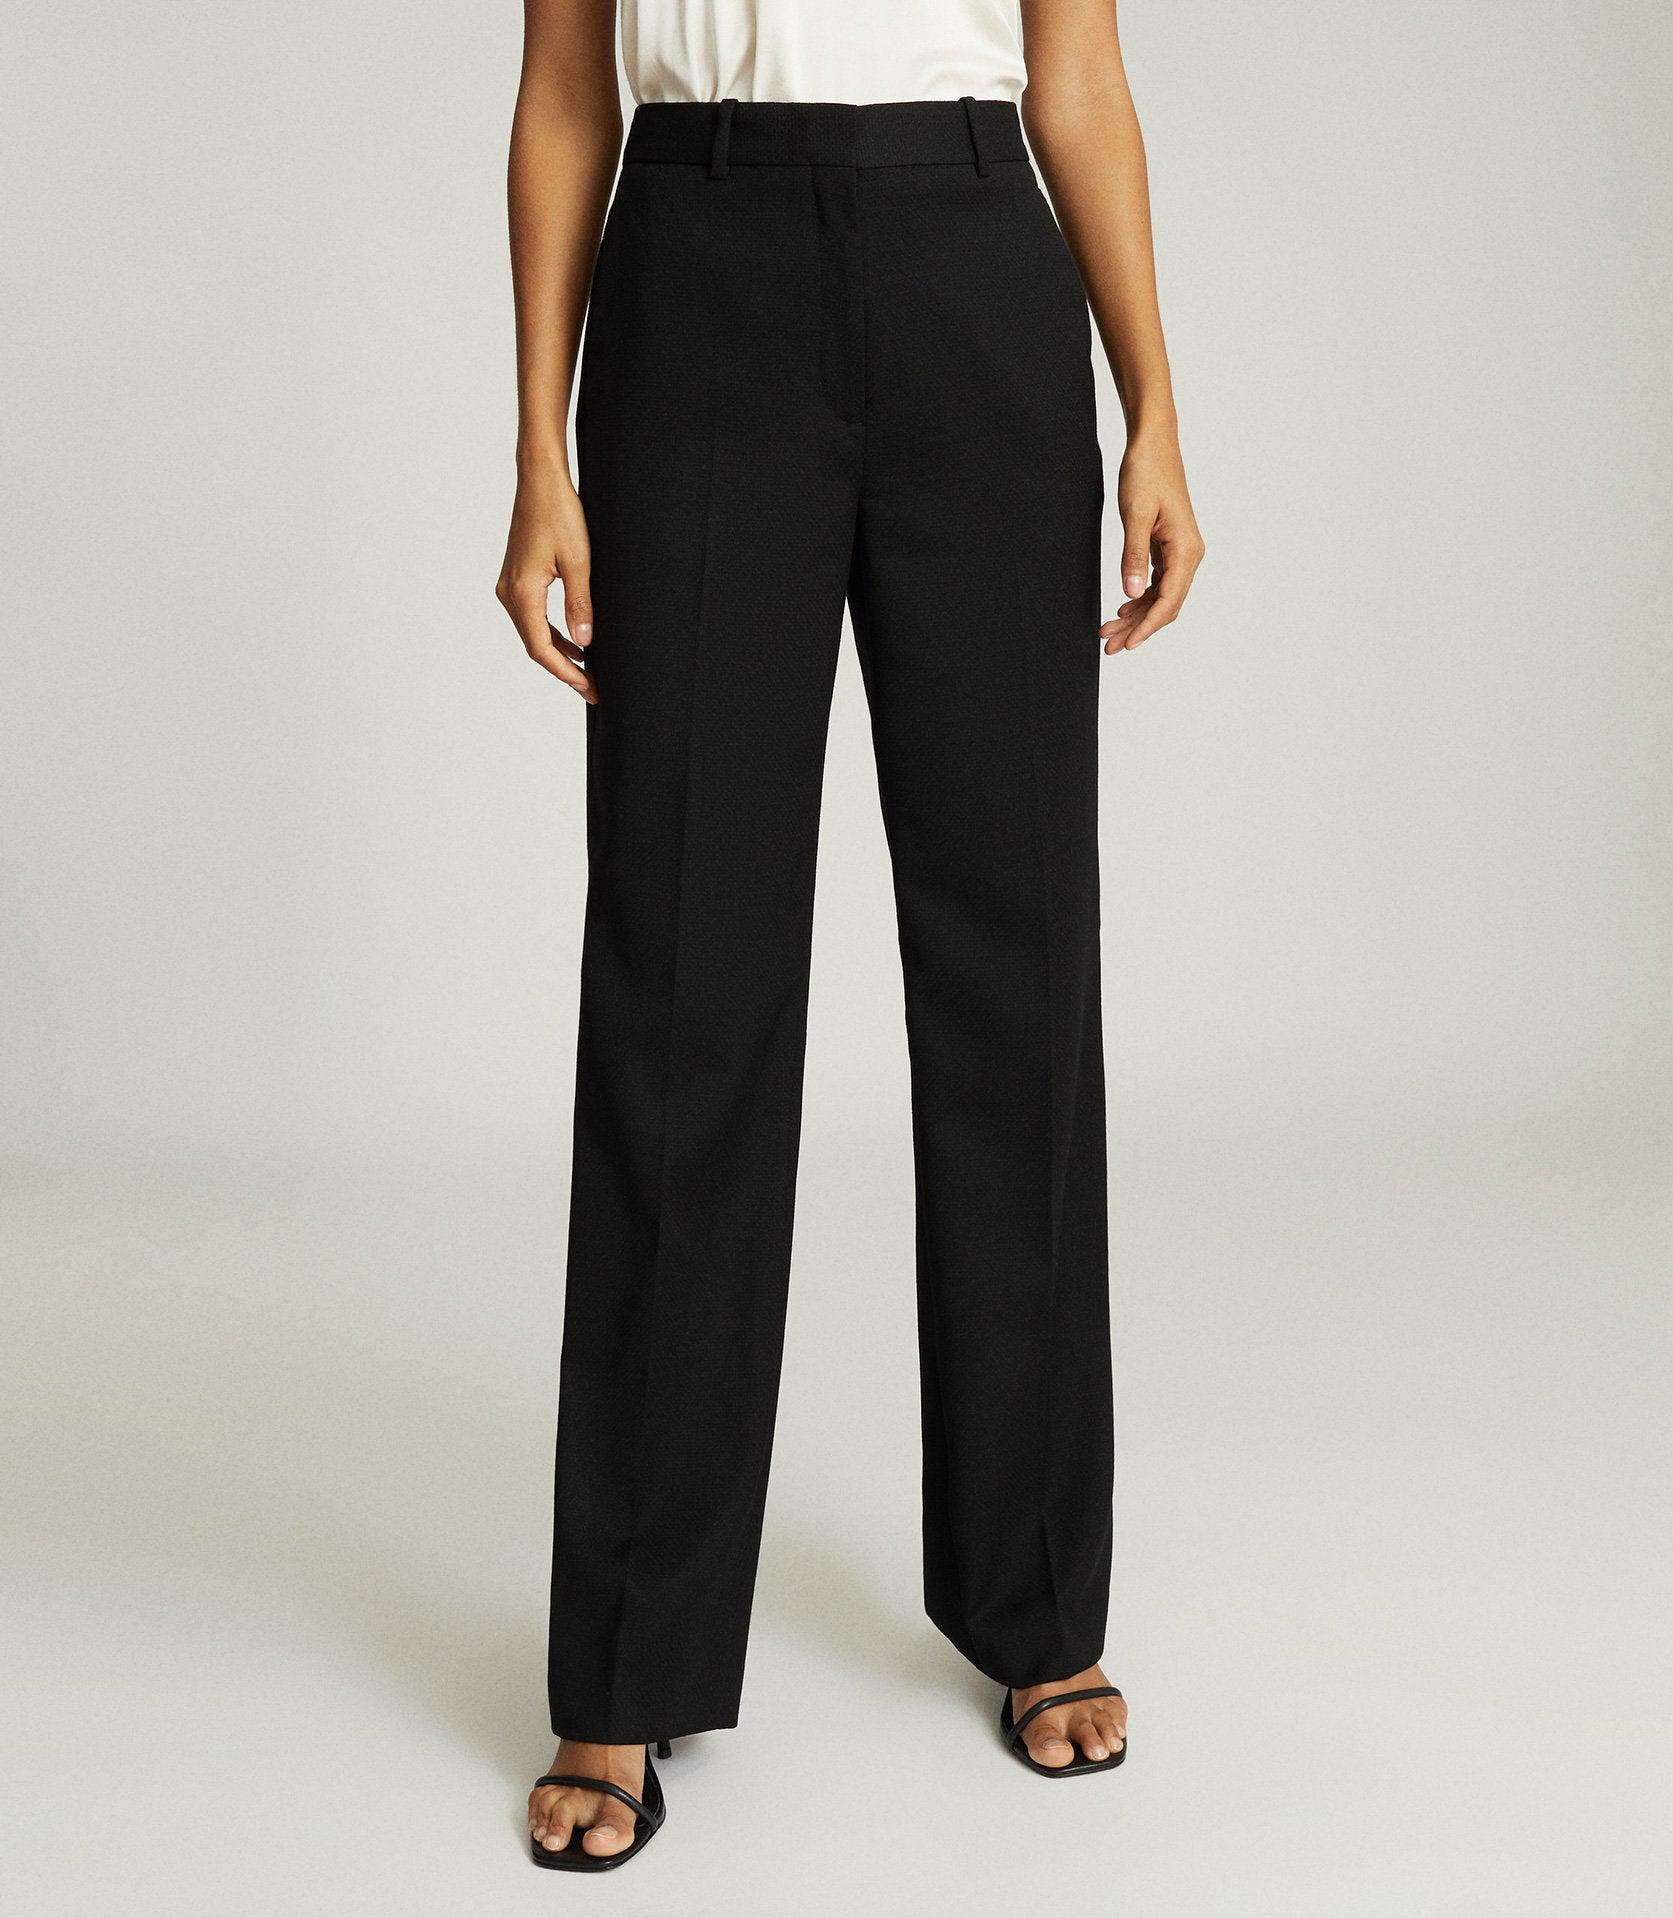 HAYES - WIDE LEG TAILORED PANTS 2